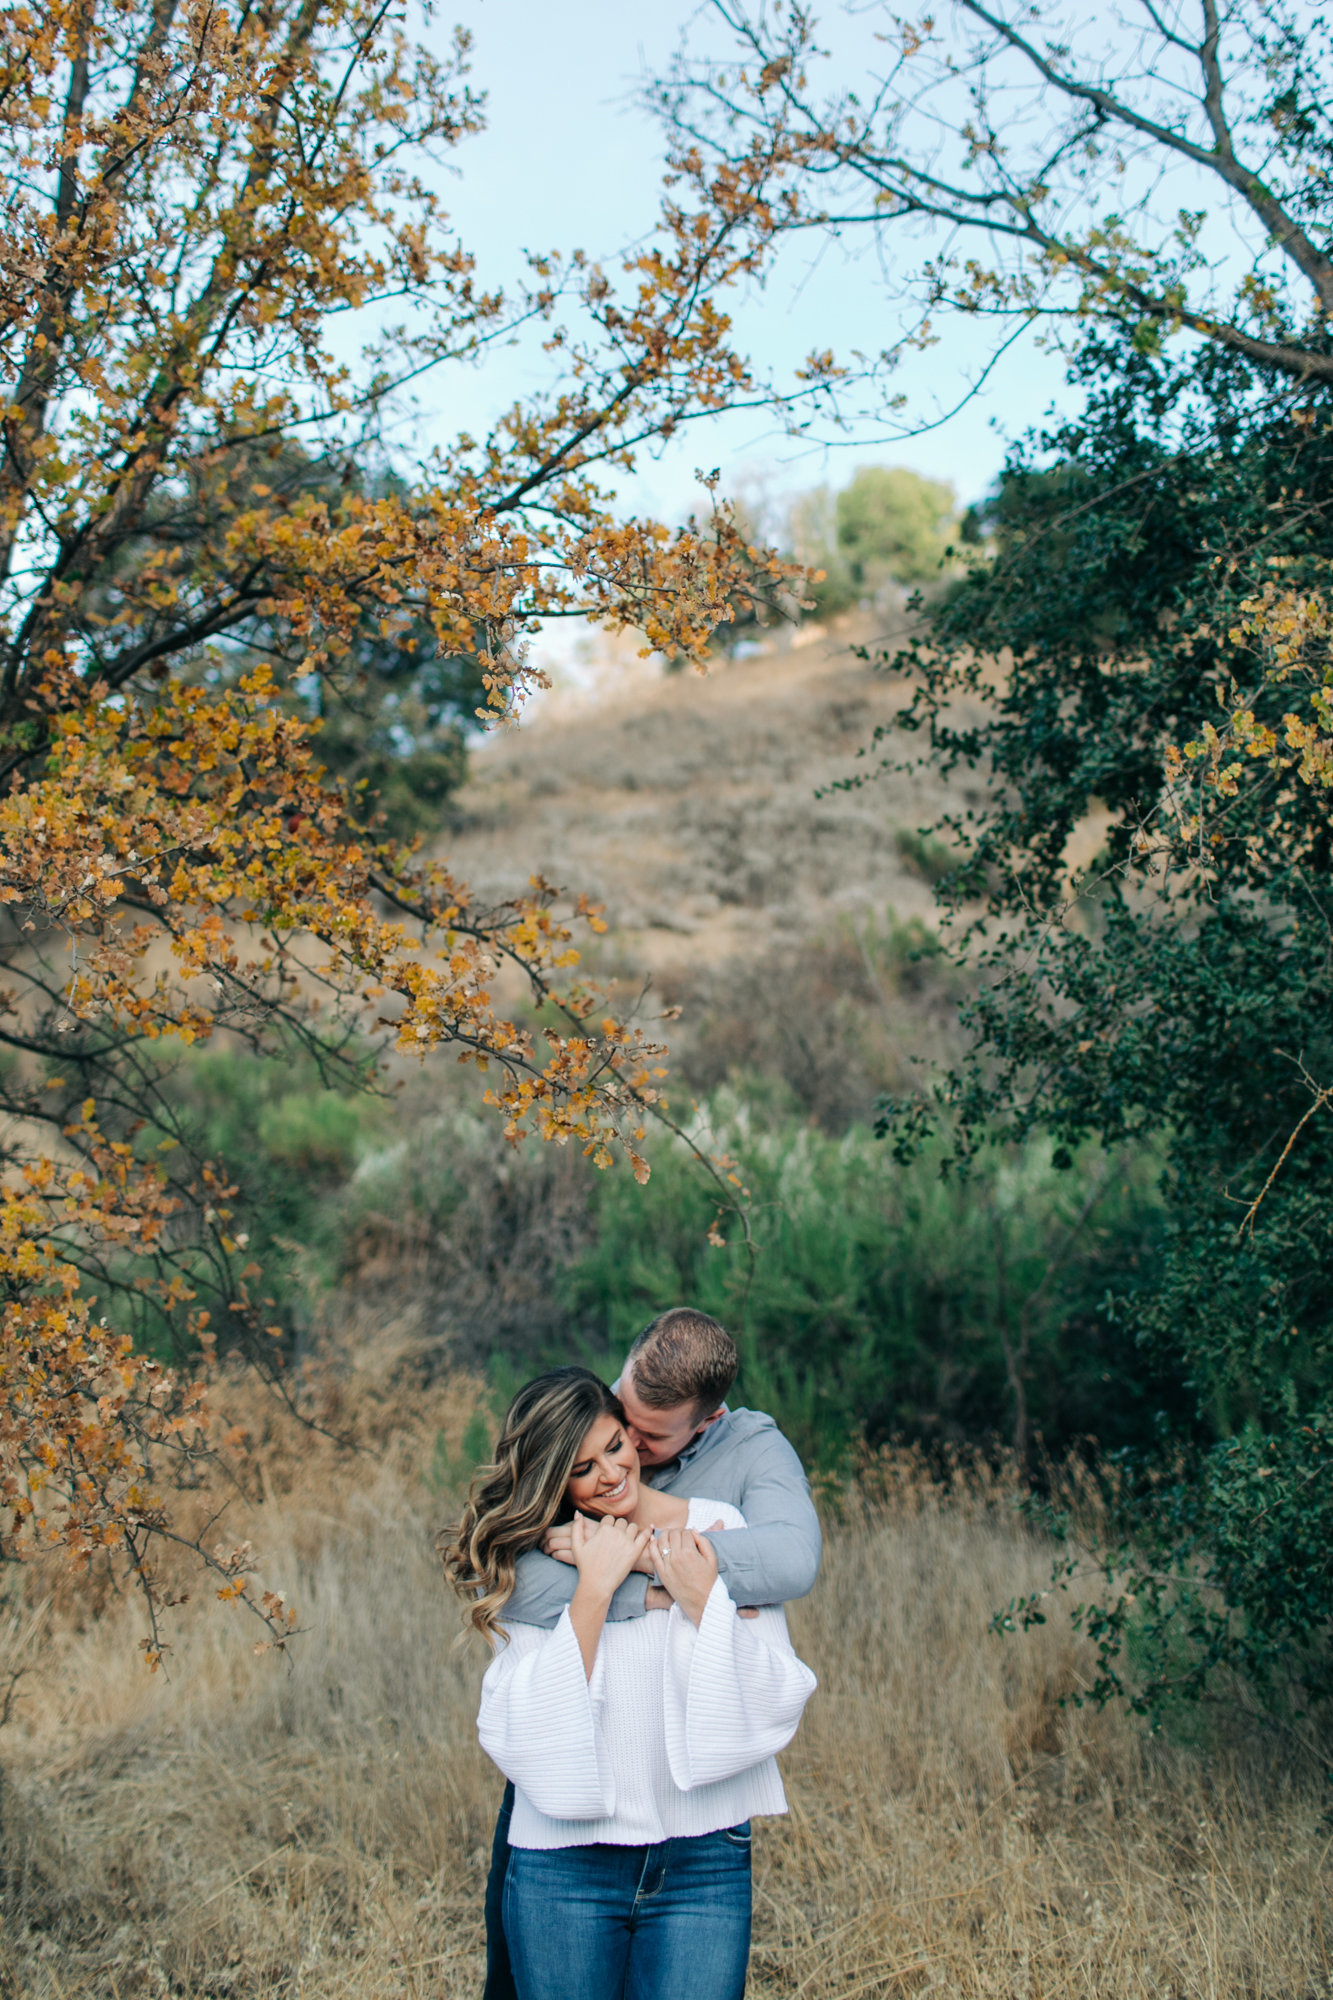 Malibu_Engagement_Session_Lily_Ro_Photography-6290